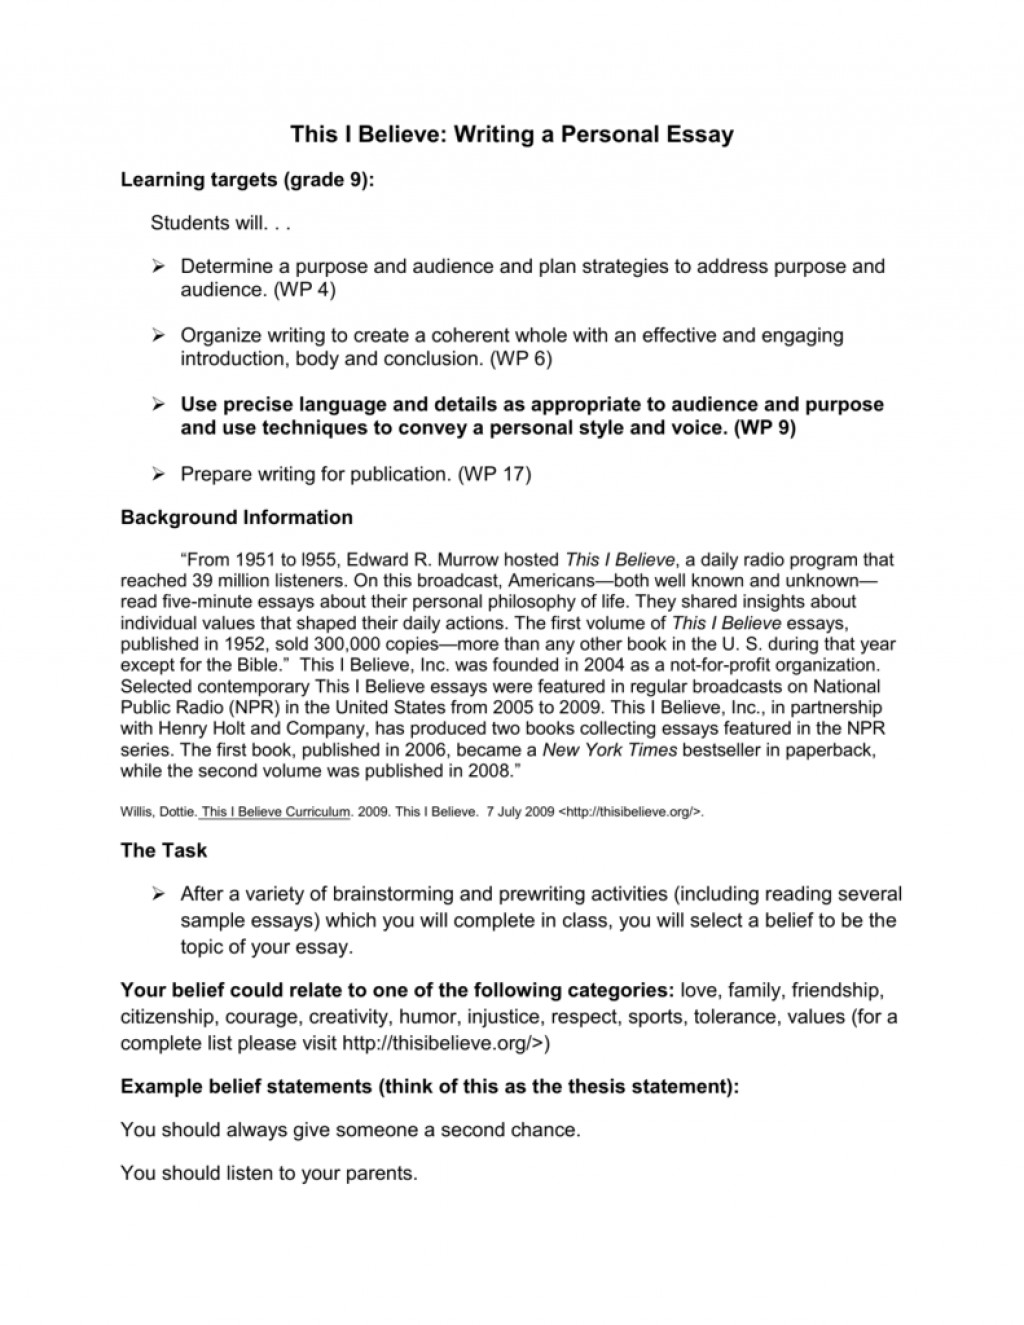 002 This I Believe Essay Examples Example 006750112 1 Stupendous Personal College Large